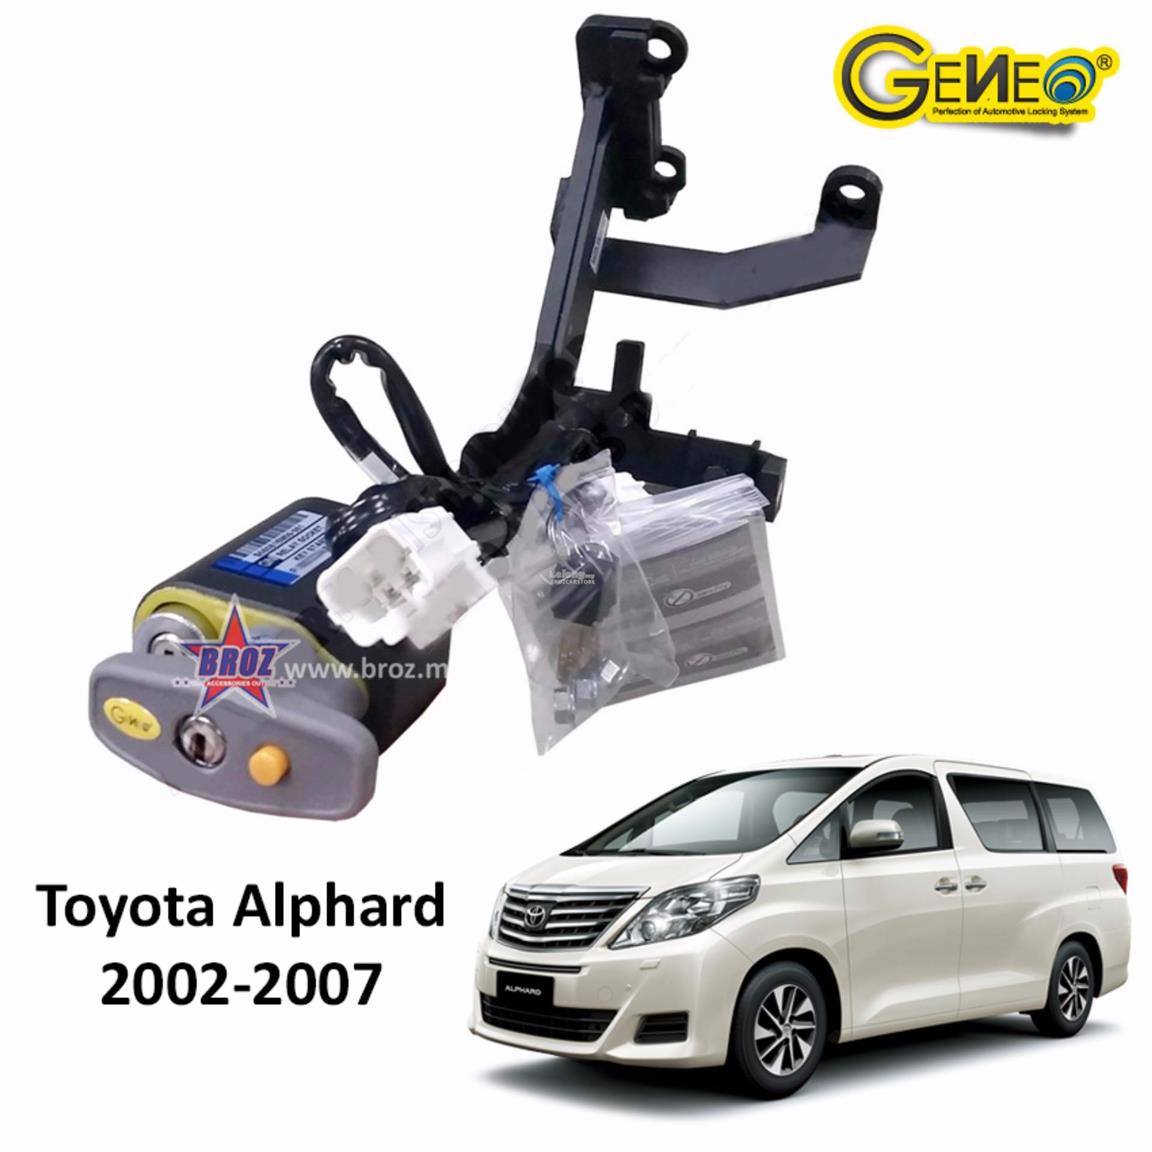 Toyota Alphard '02-'07 (recon) (AUTO Key Start Only) GENEO Pedal Lock